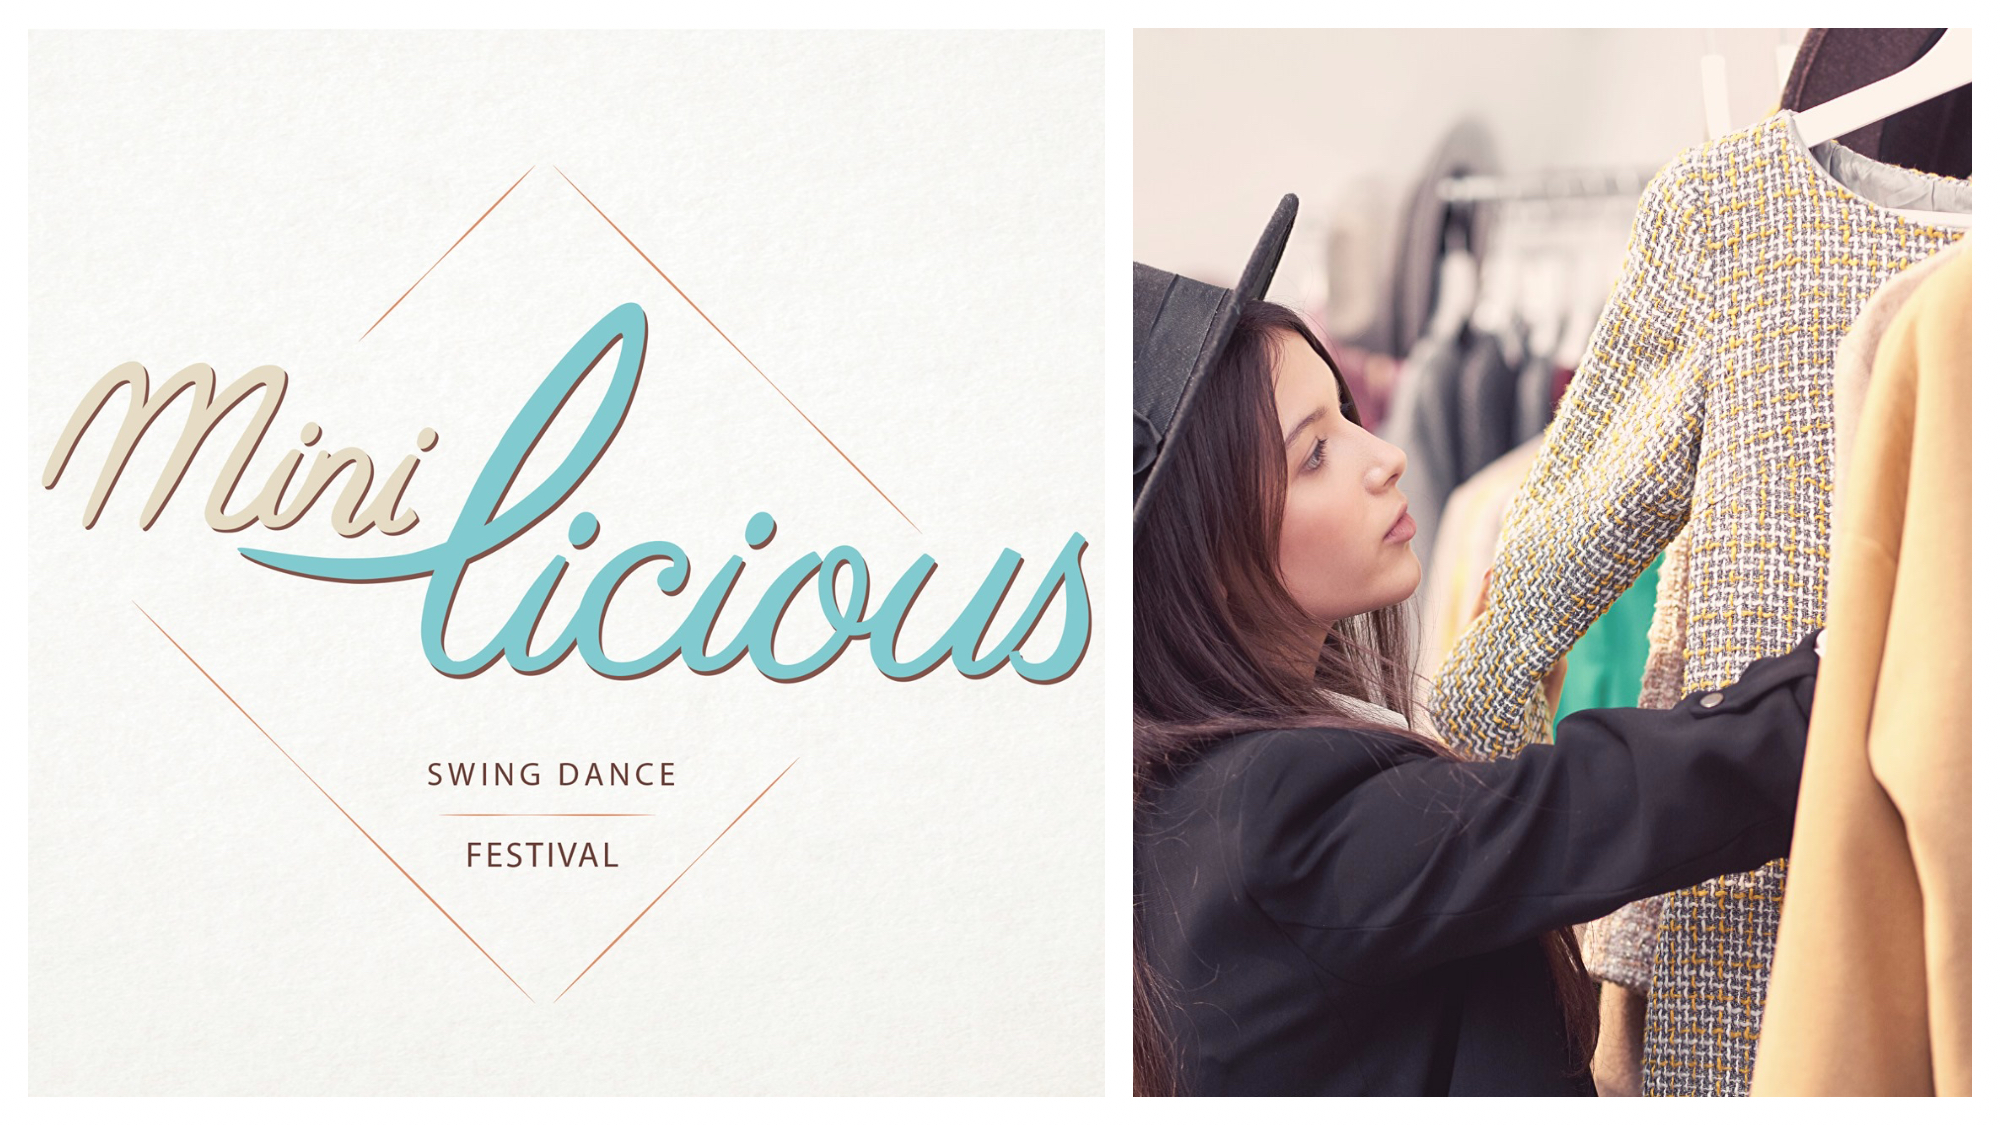 Left, a poster for a swing dance festival in Paris this February with the lettering spelling 'Minilicious'. Right, a girl wearing a black hat looking through  racks of clothes.